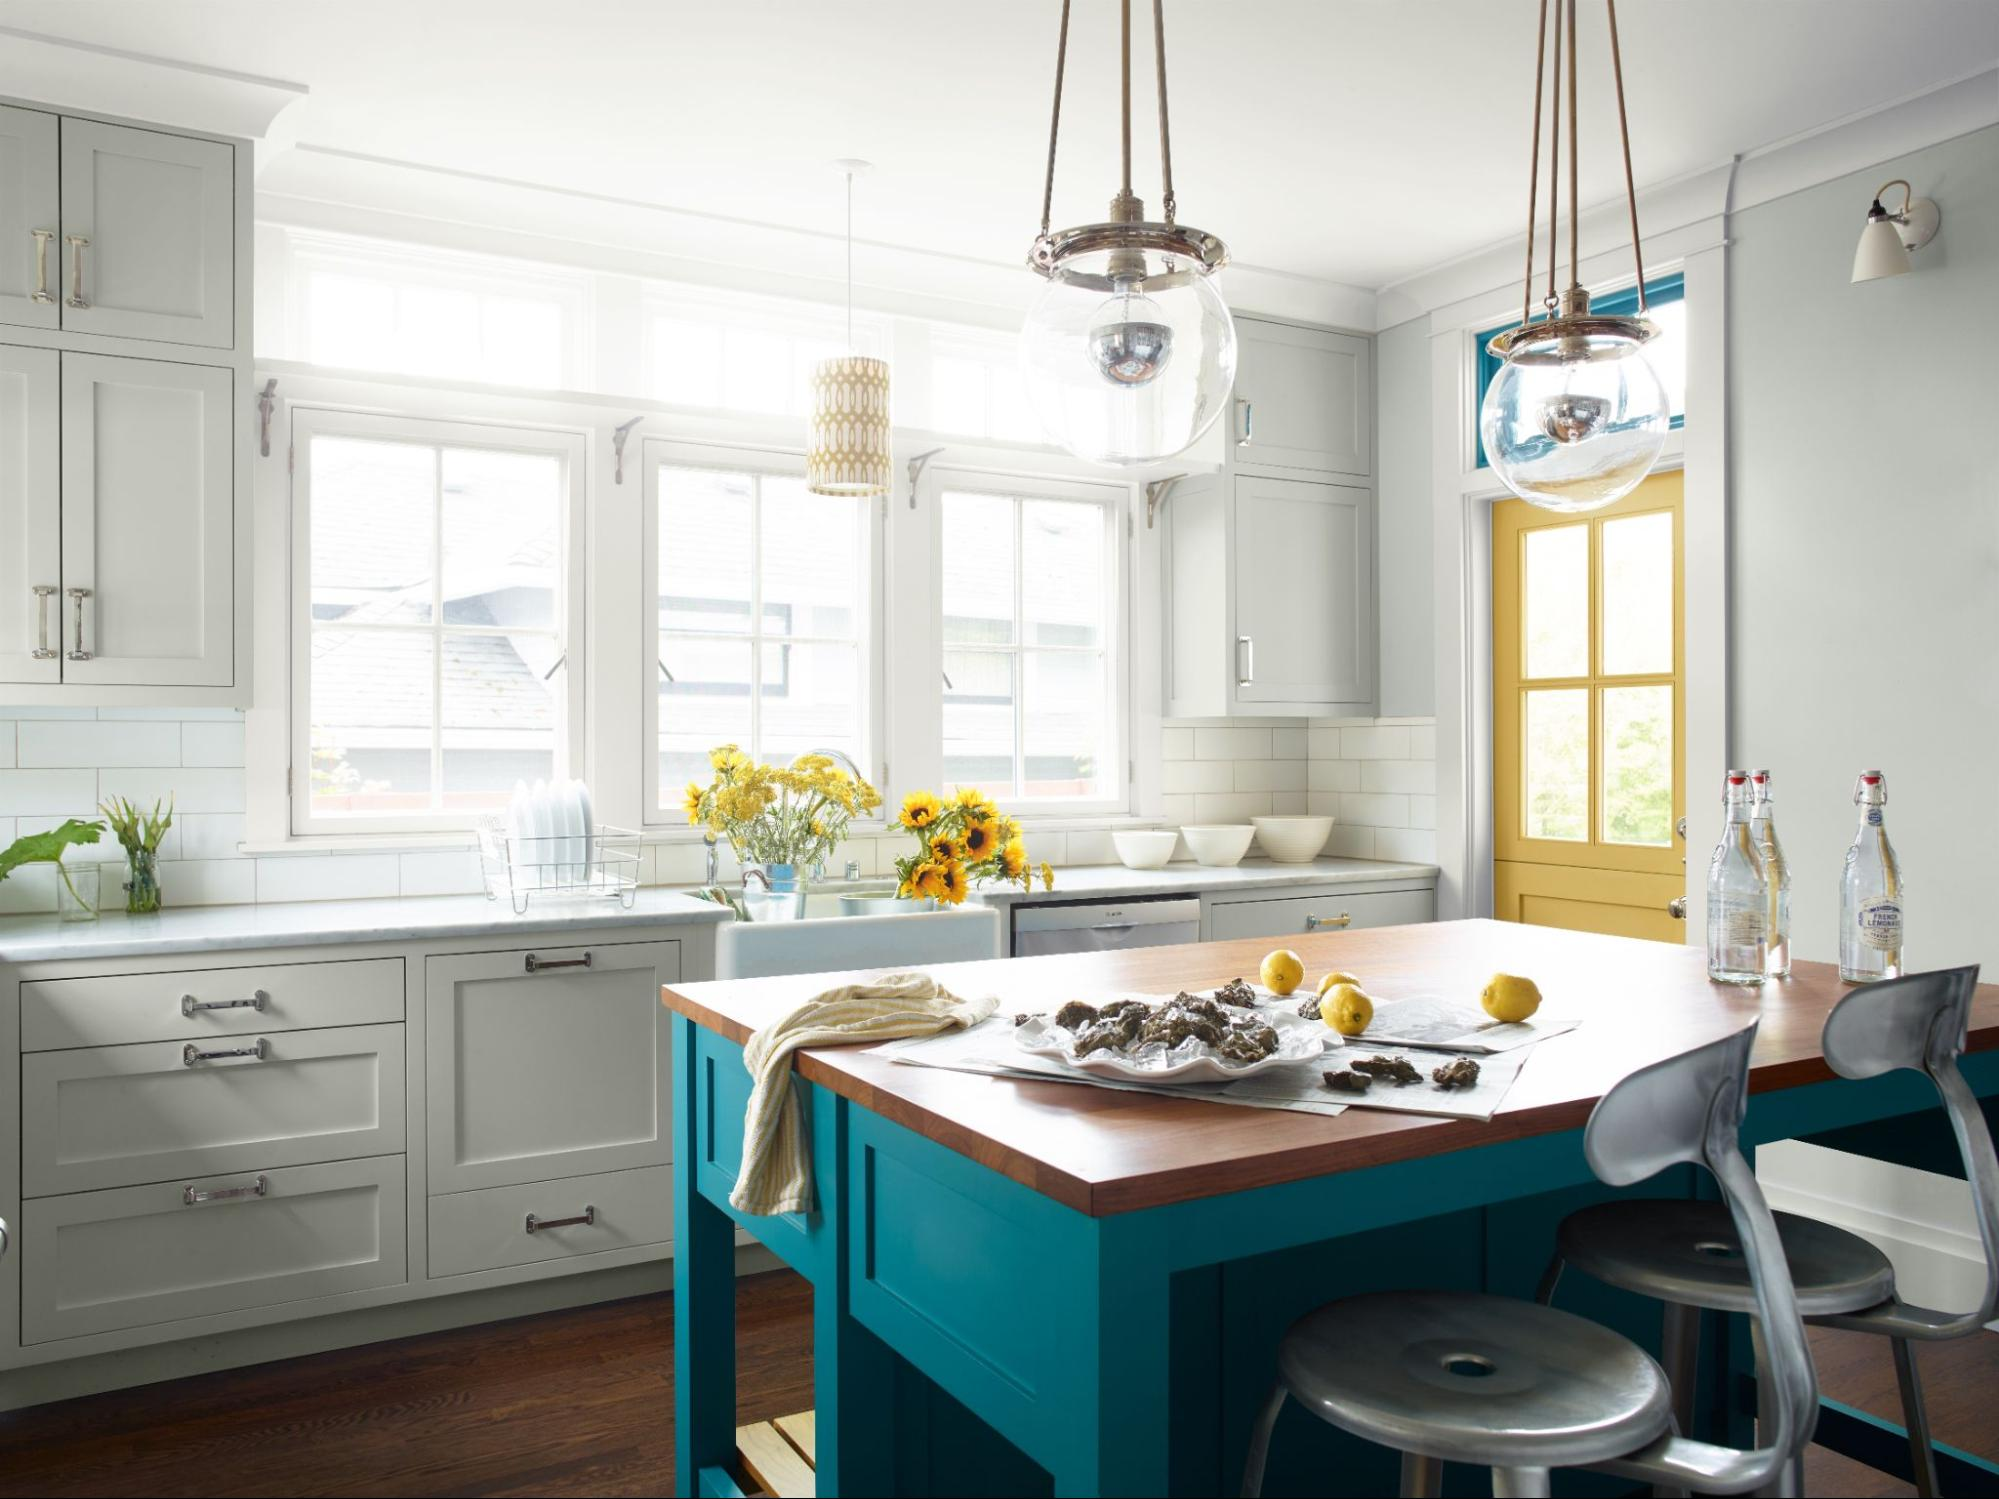 Benjamin Moore Paper White in the kitchen, complemented by bright accent colors.